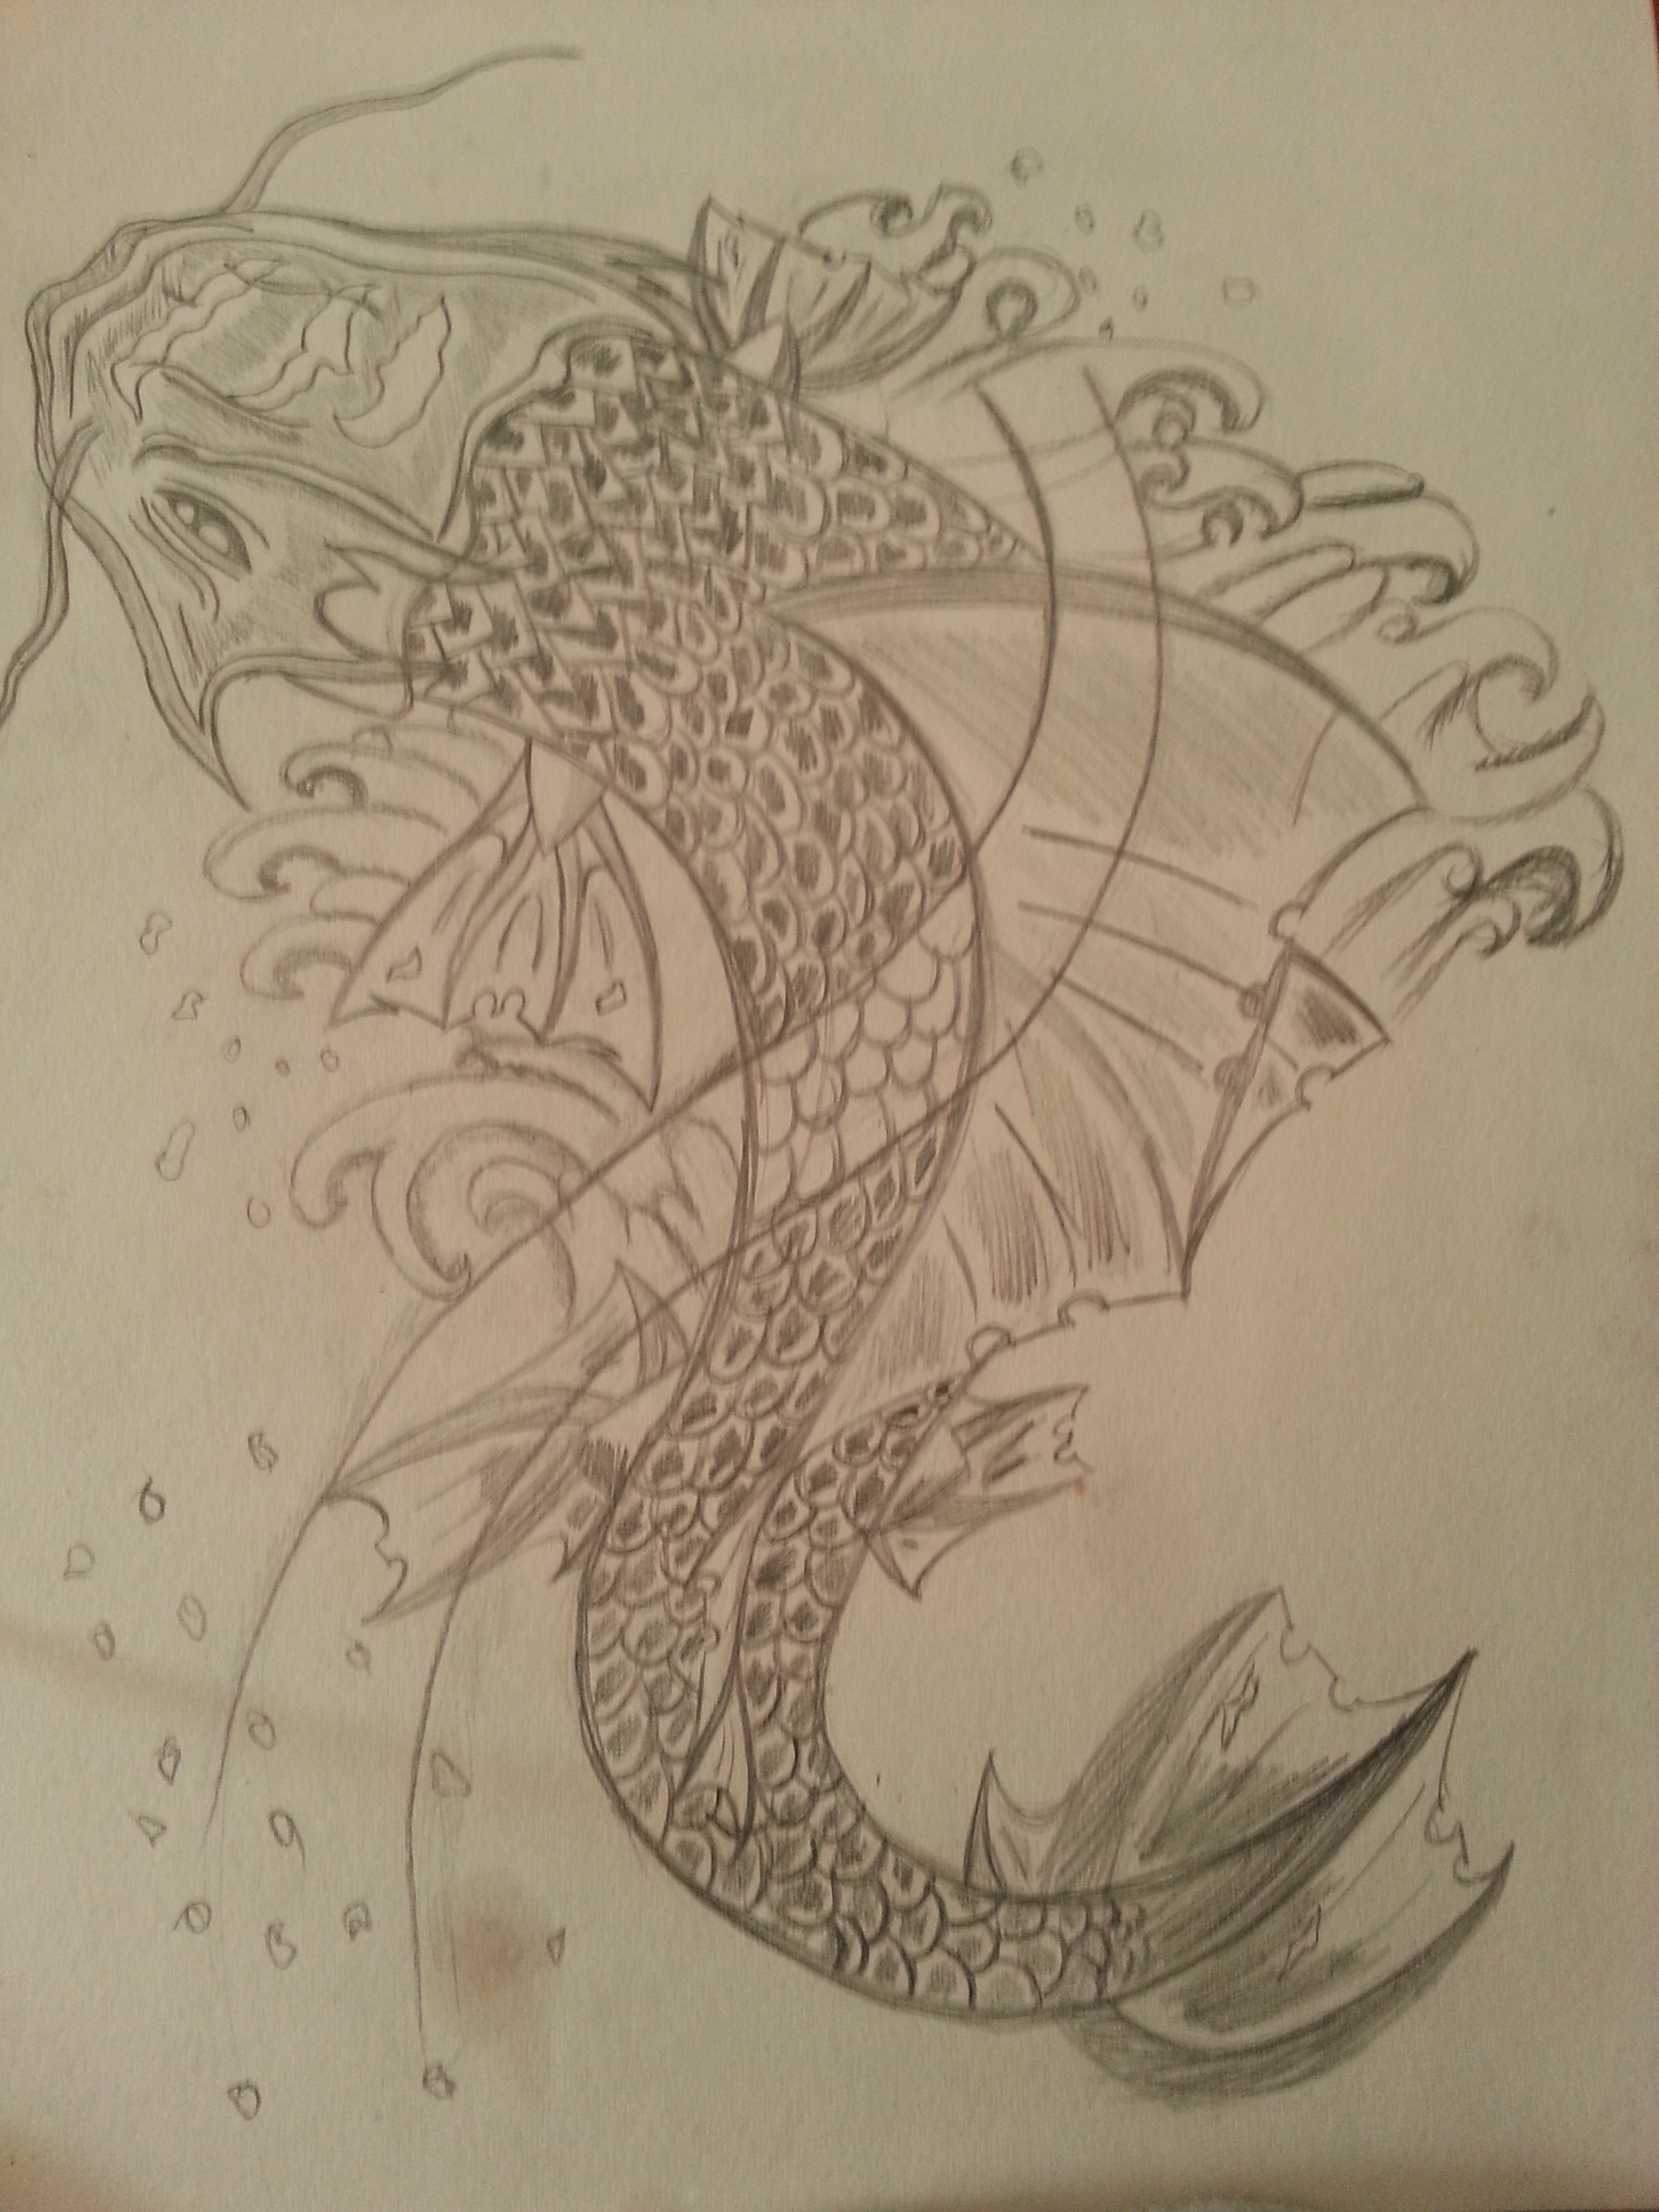 Koi Dragon Sketch Koi Fish Sketch n 2 by